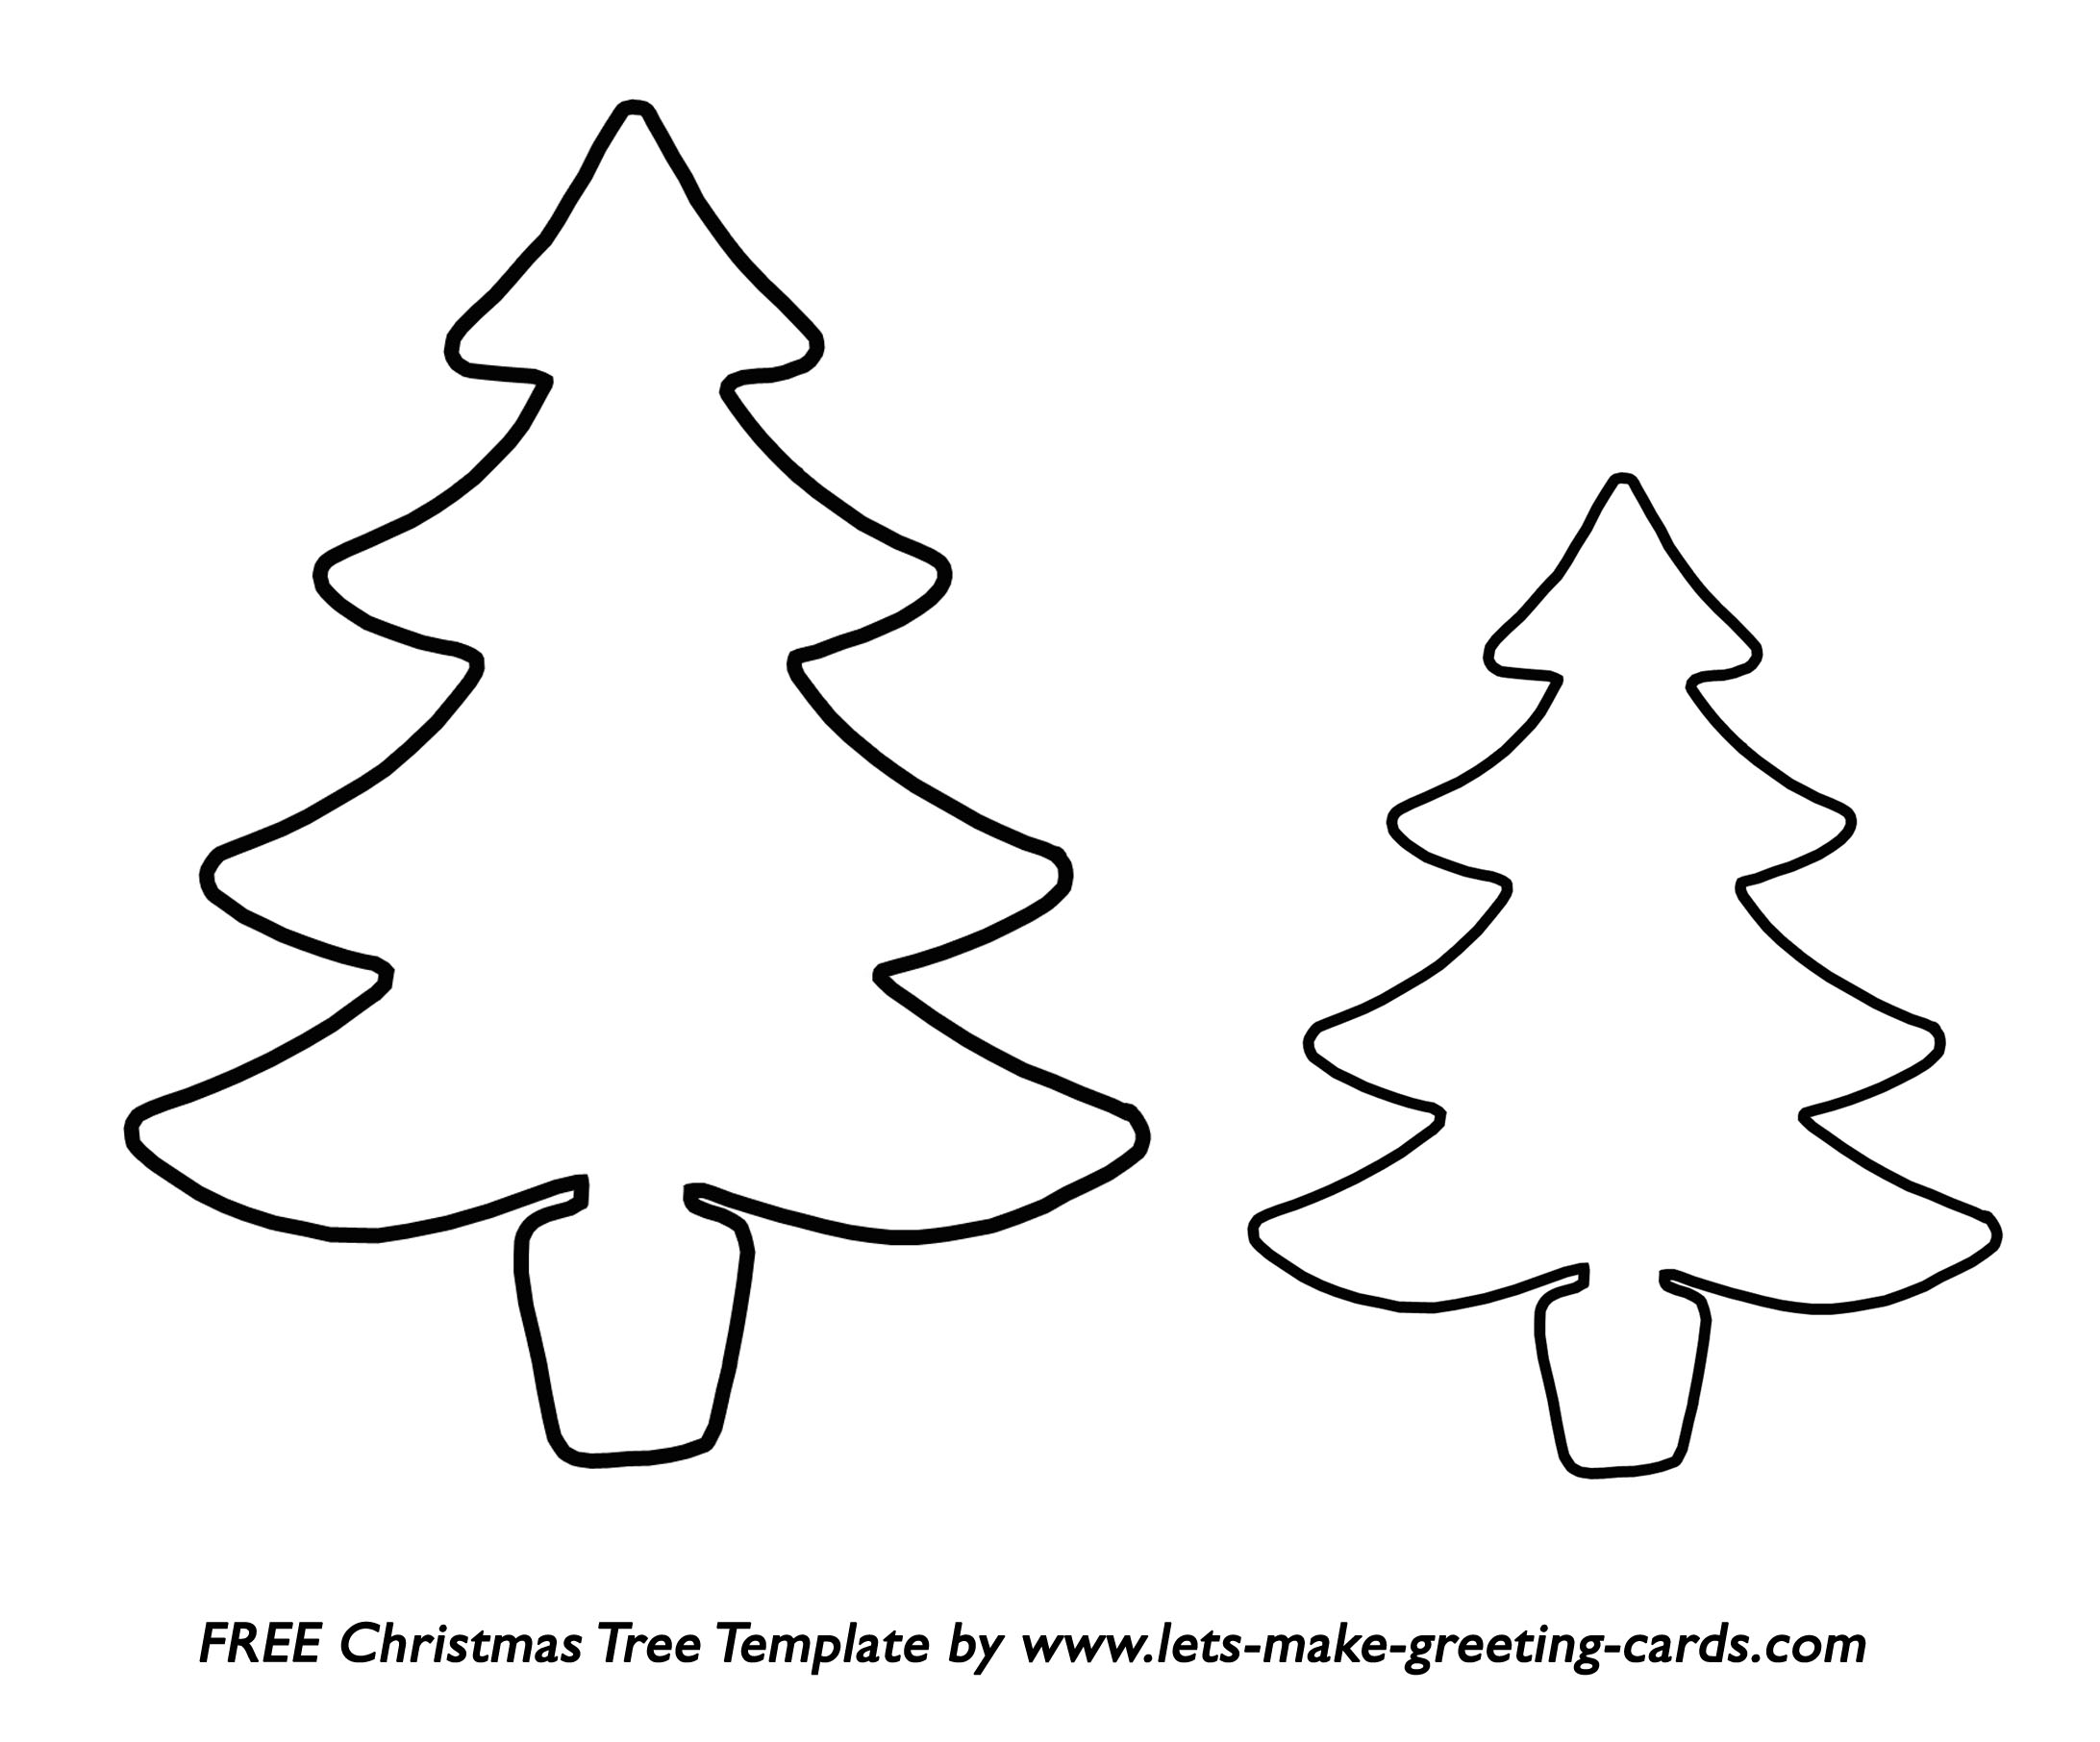 FREE Christmas Tree Template. FREE Christmas Card Ideas.